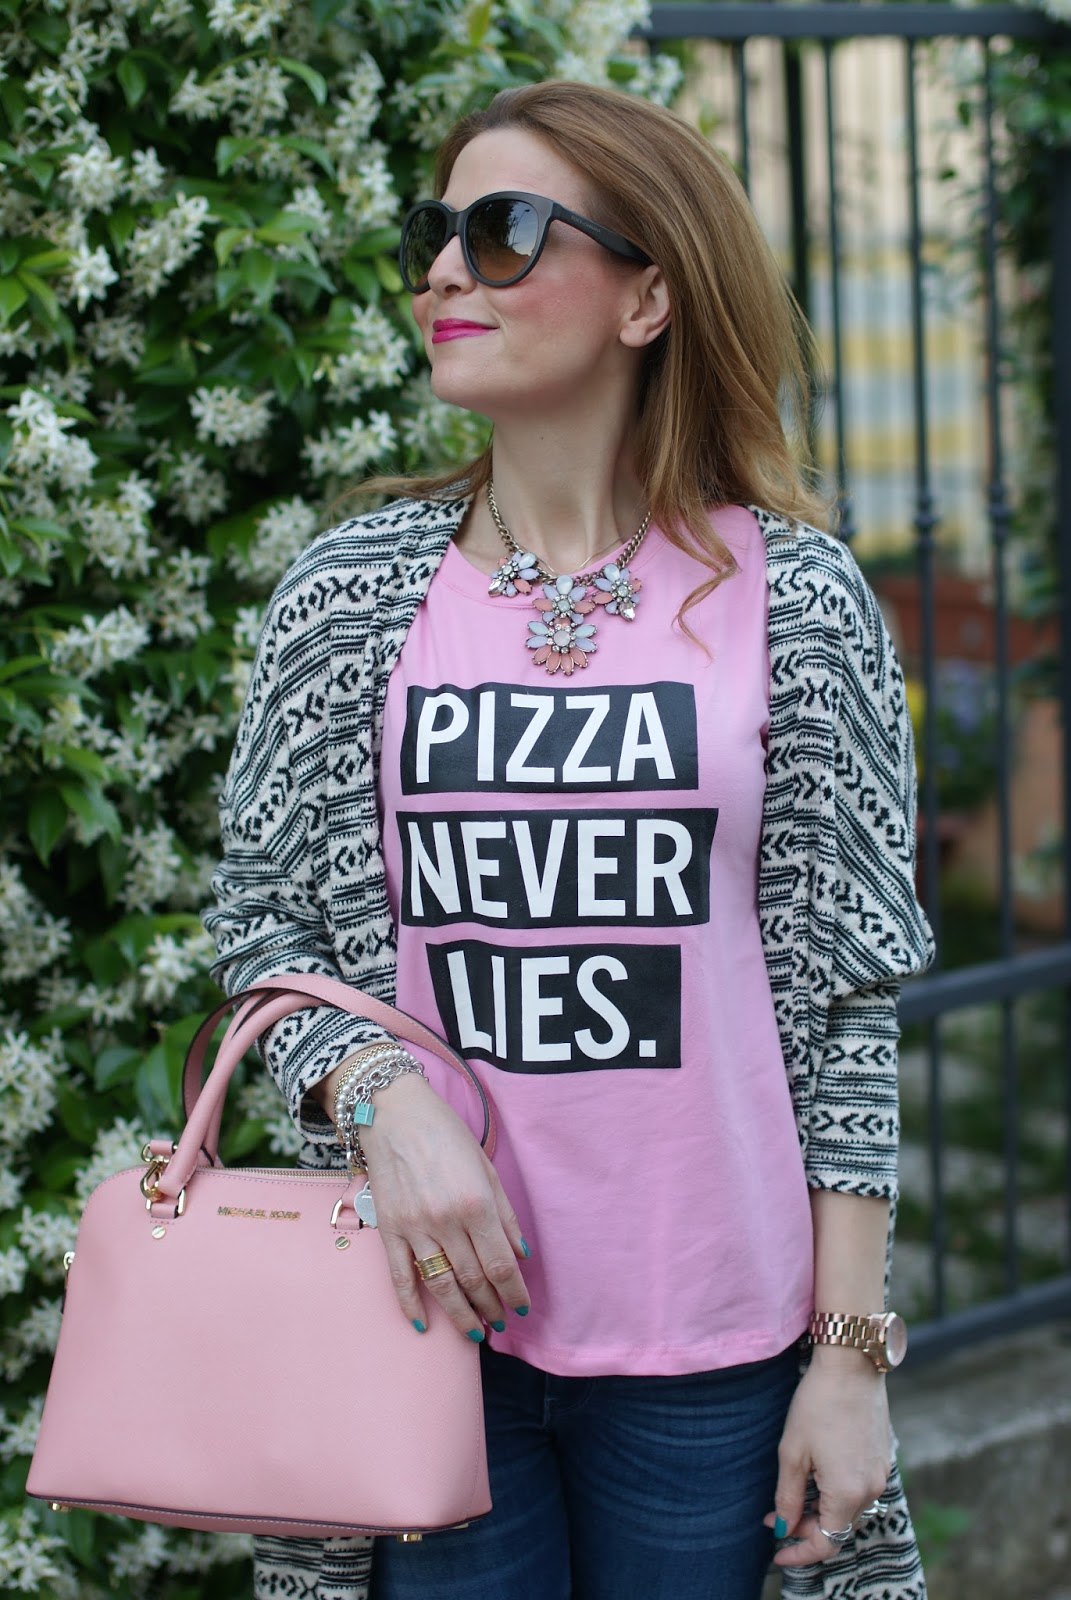 Pizza never lies, Zaful pink t-shirt, Zaful pizza never lies, casual pink look on Fashion and Cookies fashion blog, fashion blogger style